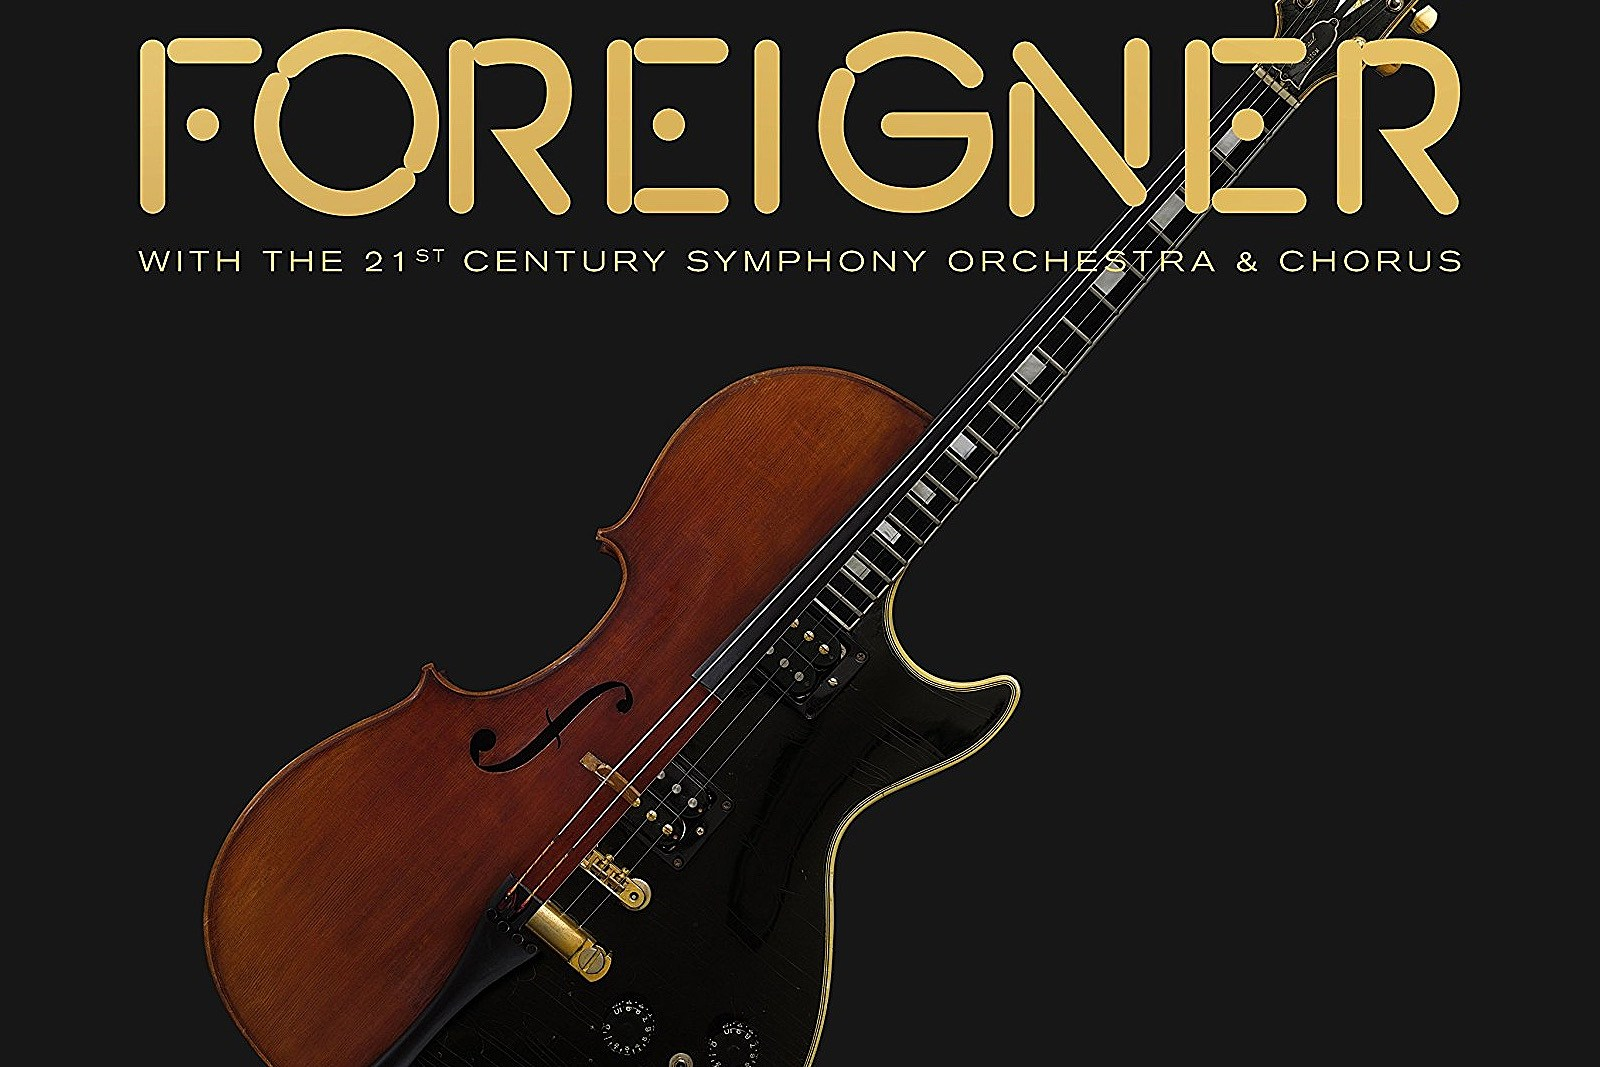 Listen to Clips From Foreigner's Orchestral Album